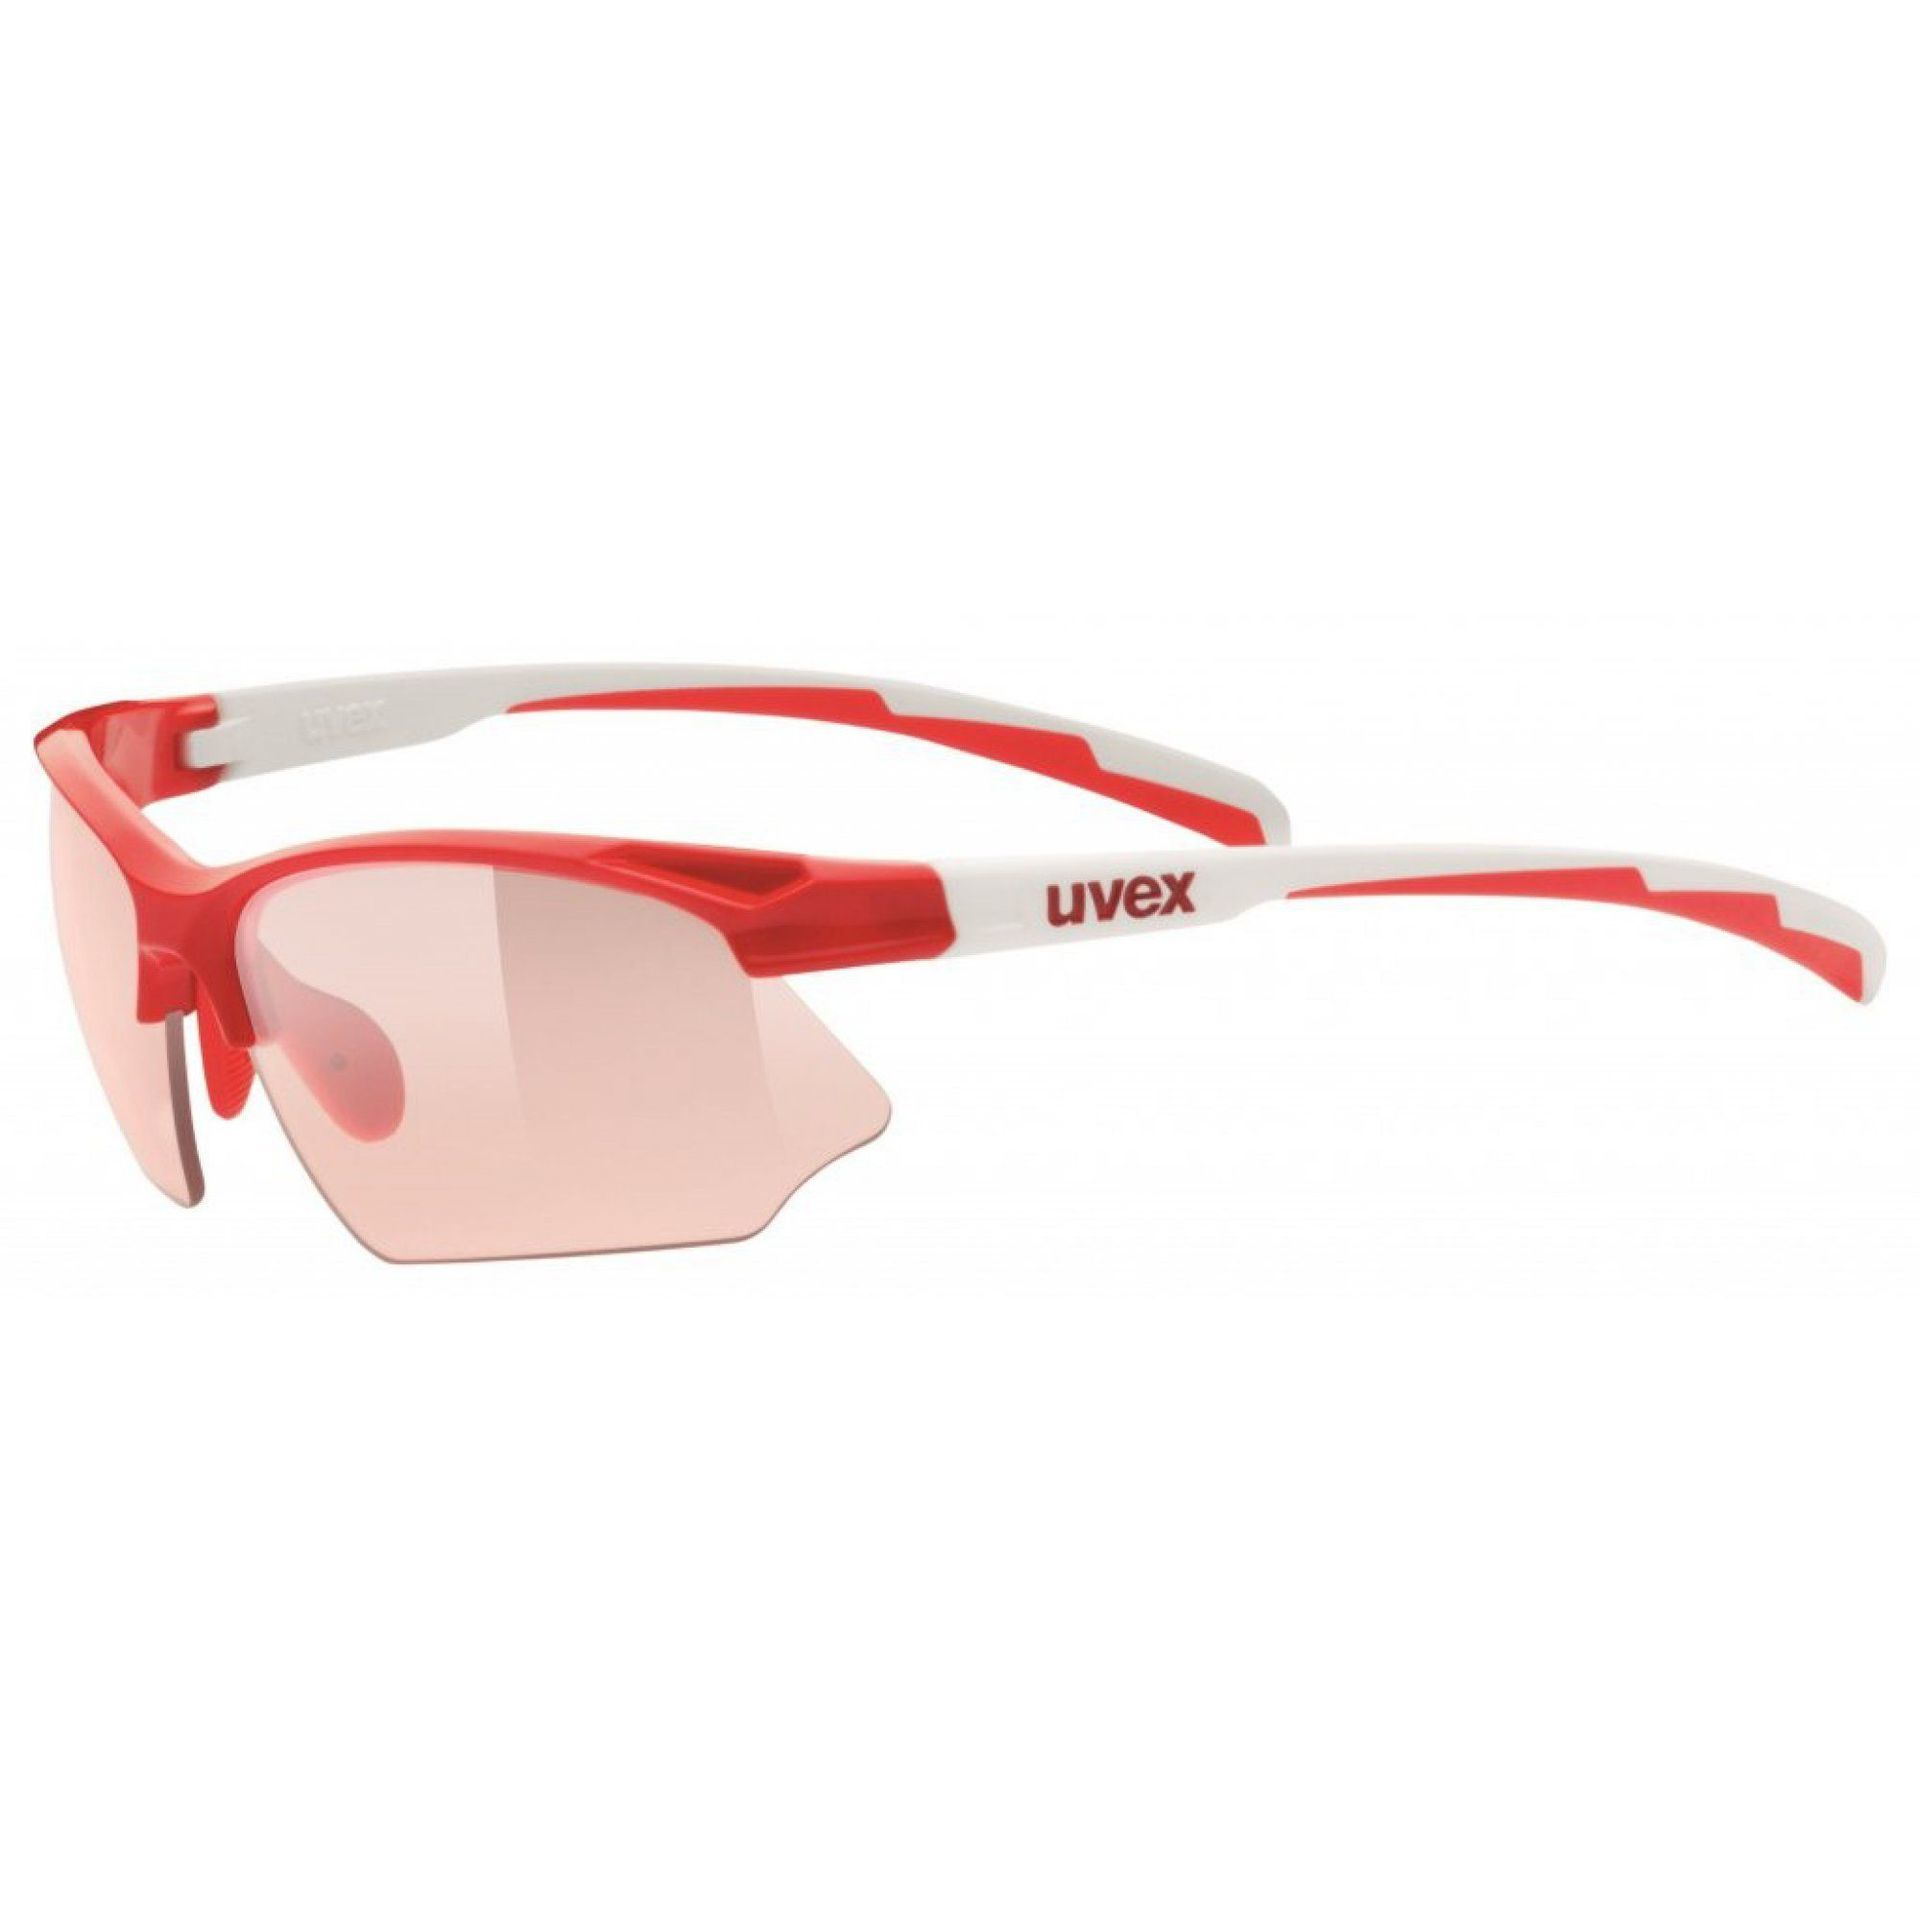 OKULARY UVEX SPORTSTYLE 802 V RED WHITE